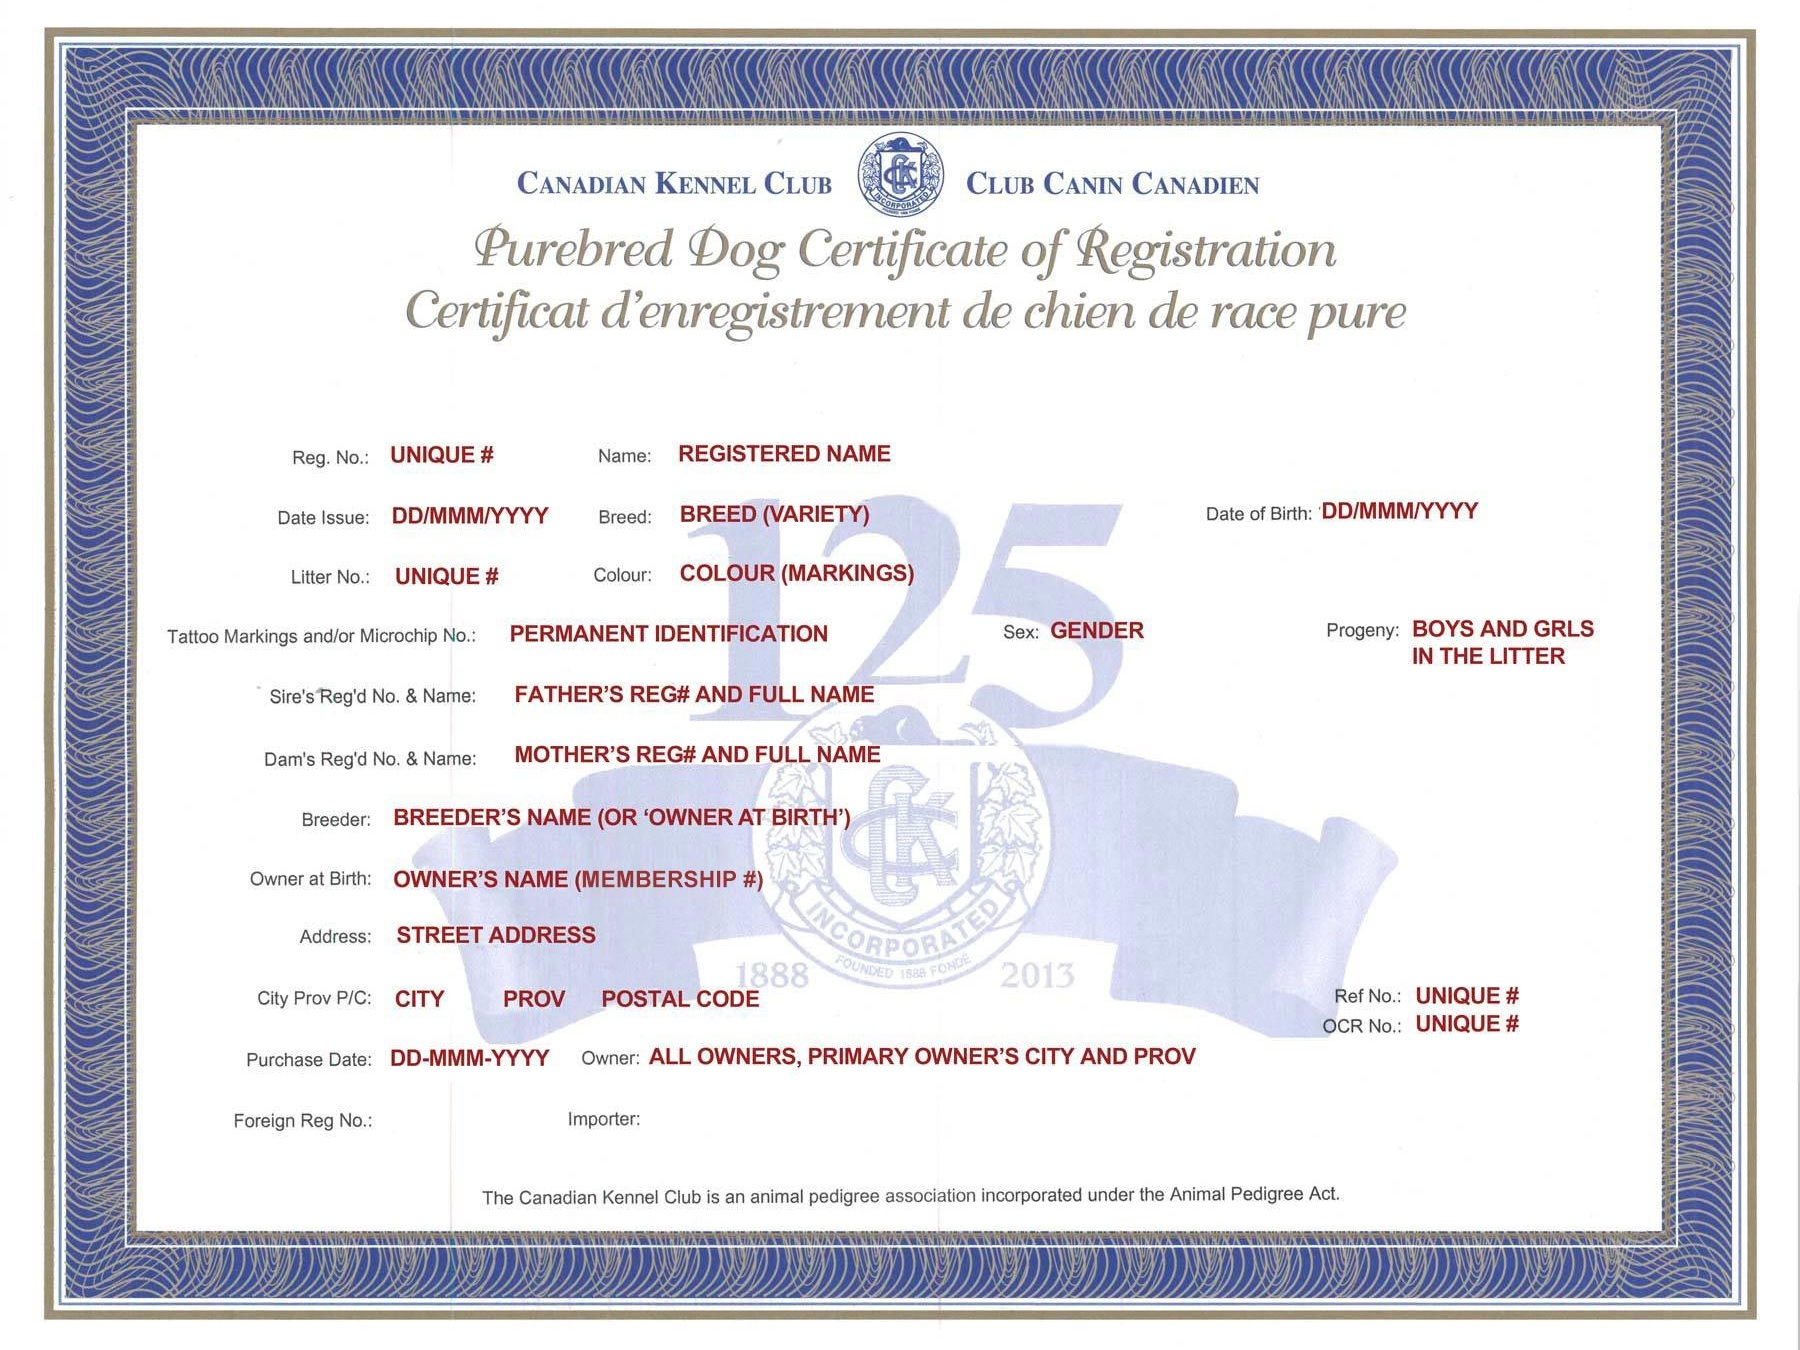 An example of the Canadian Kennel Club Purebred Registration Certificate